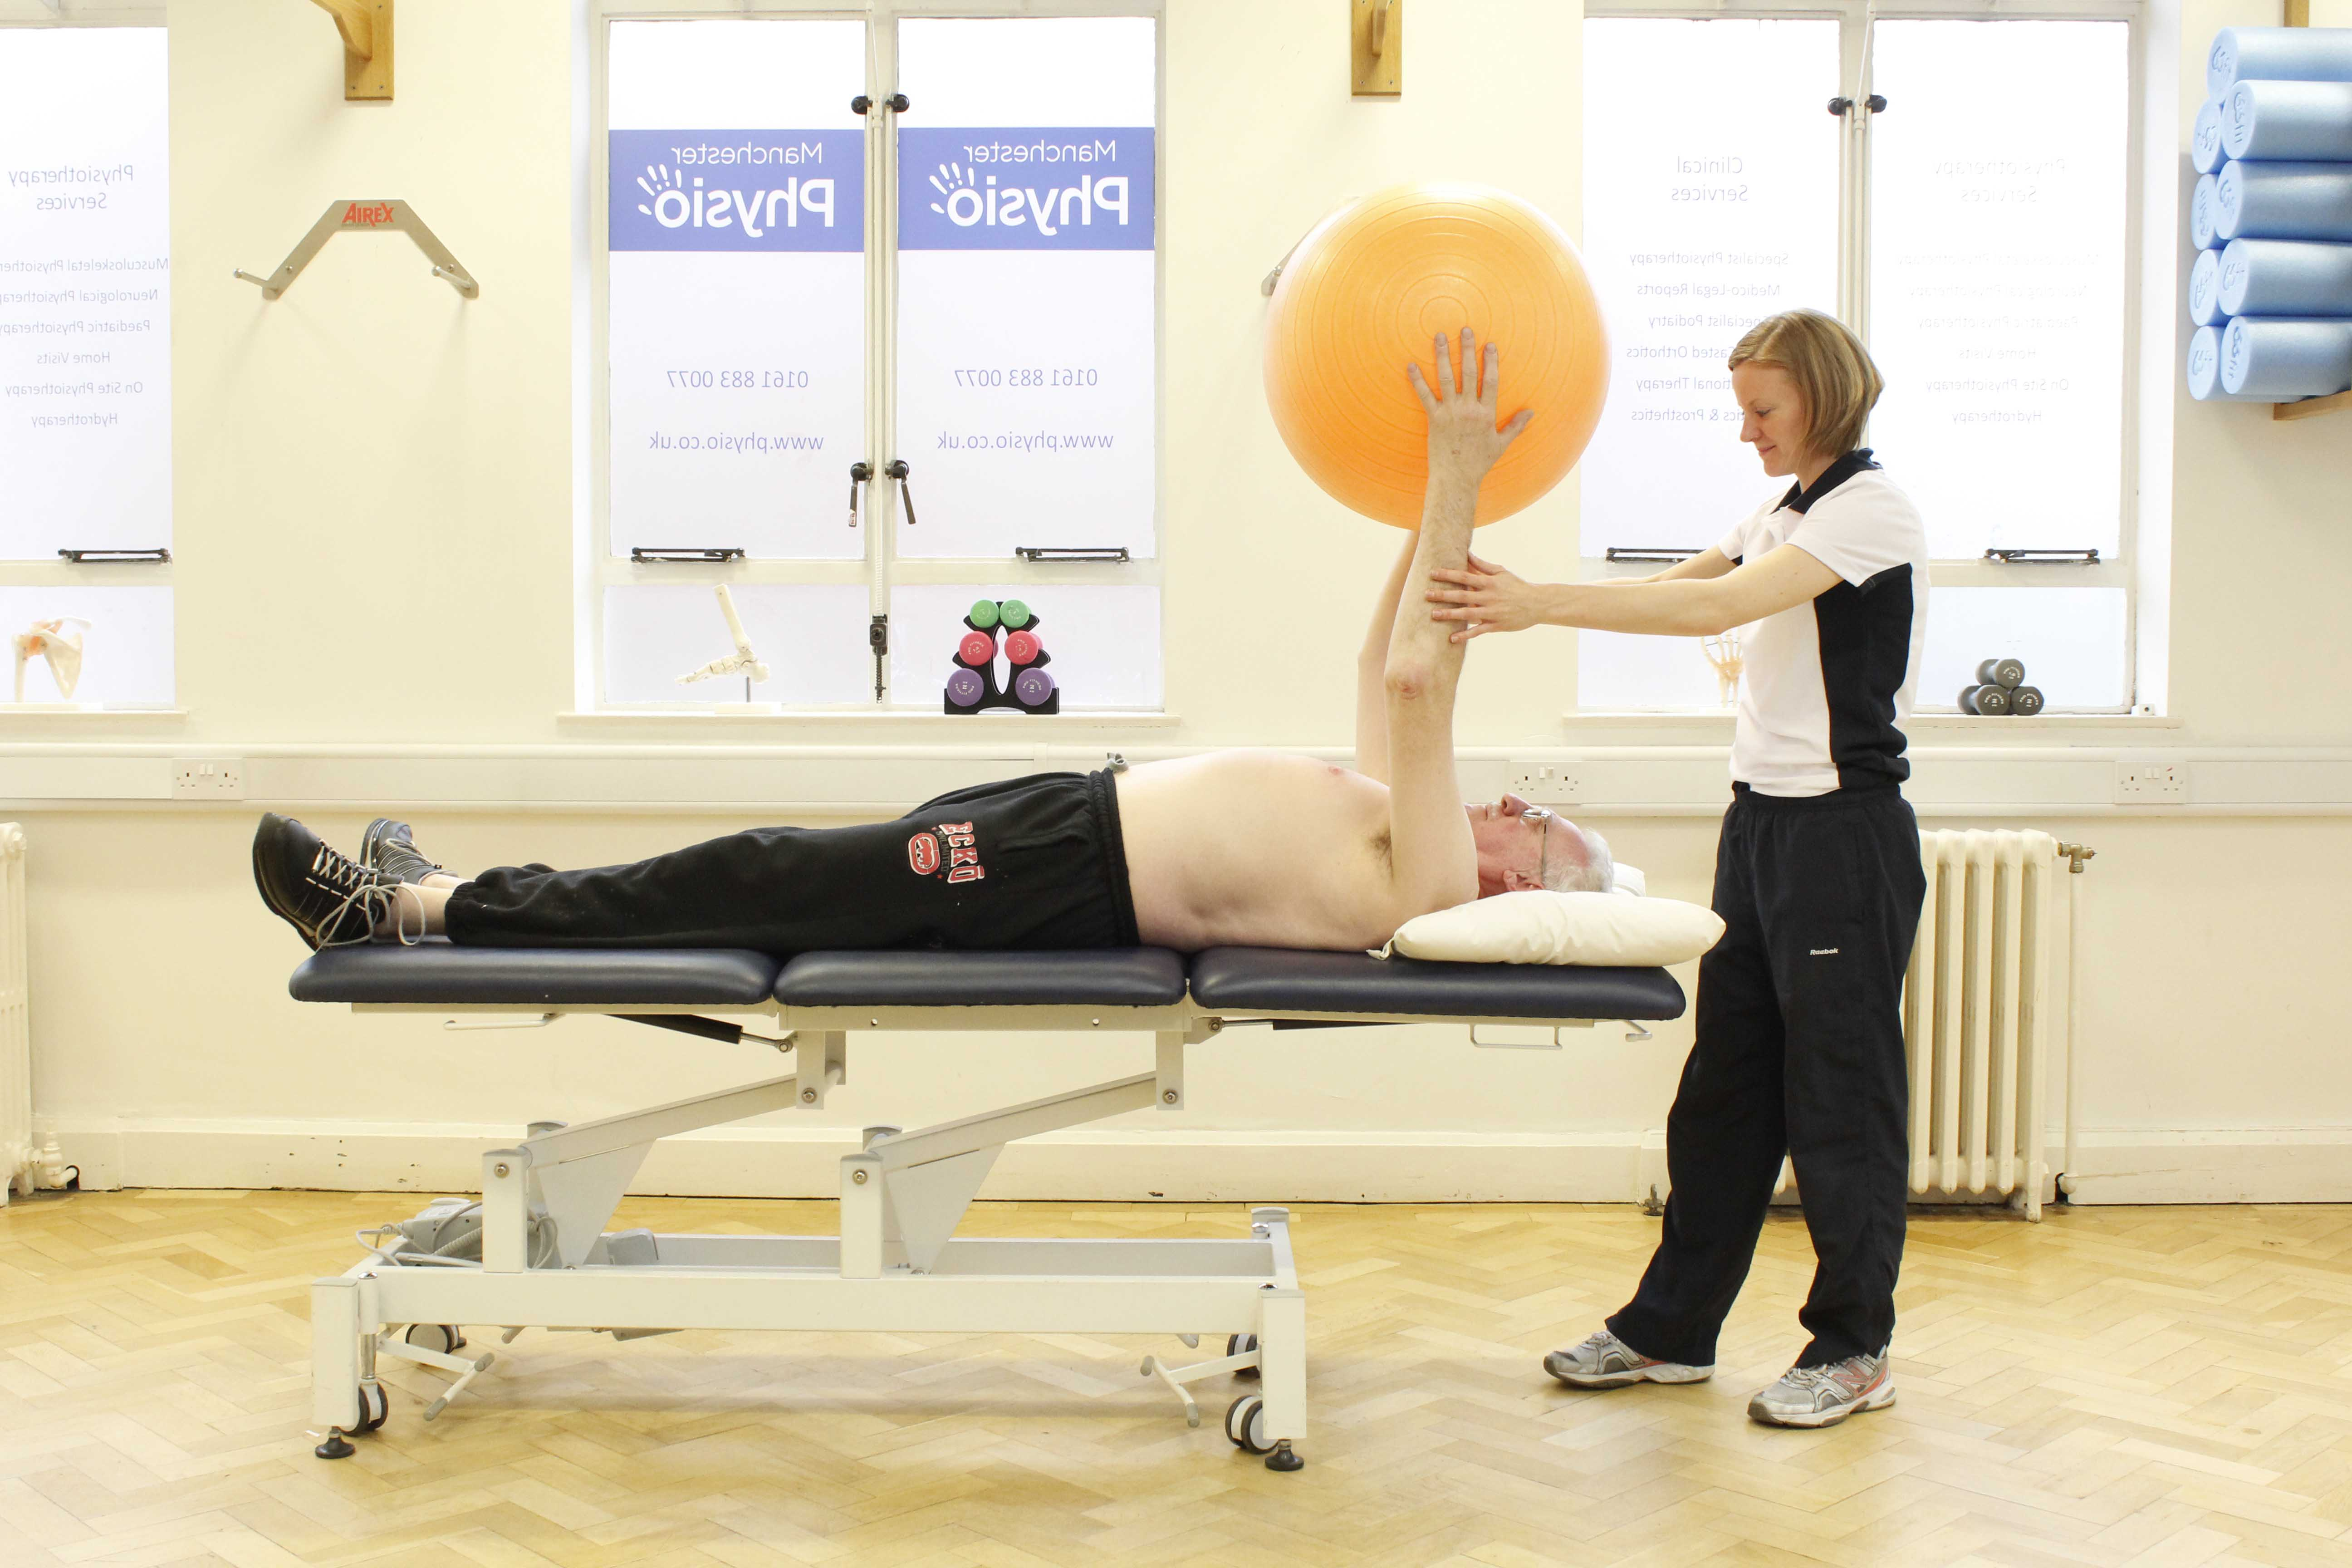 Upper limb mobility exercises using a gym ball assisted by a physiotherapist